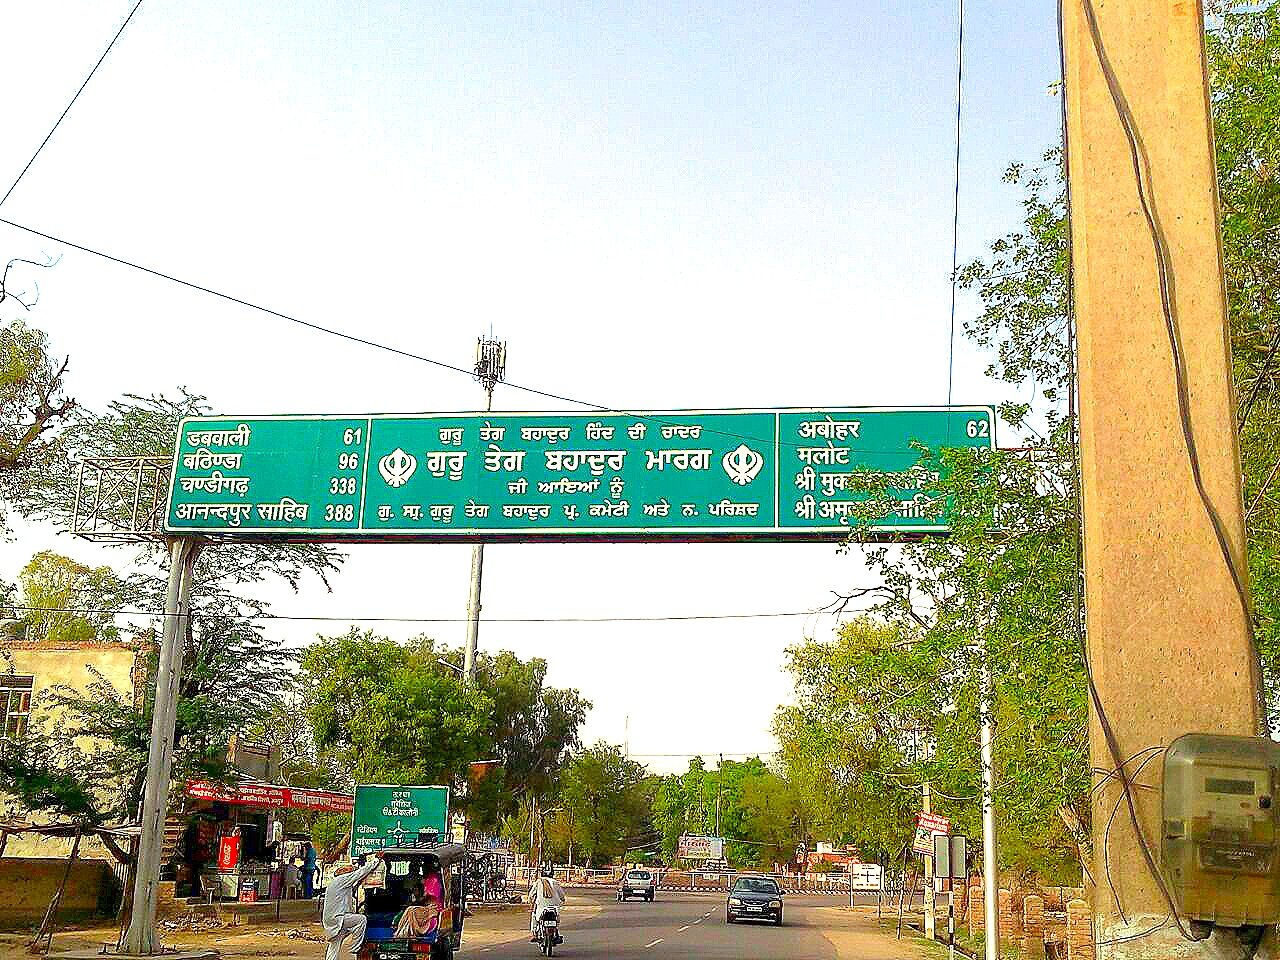 Punjabi on a road sign